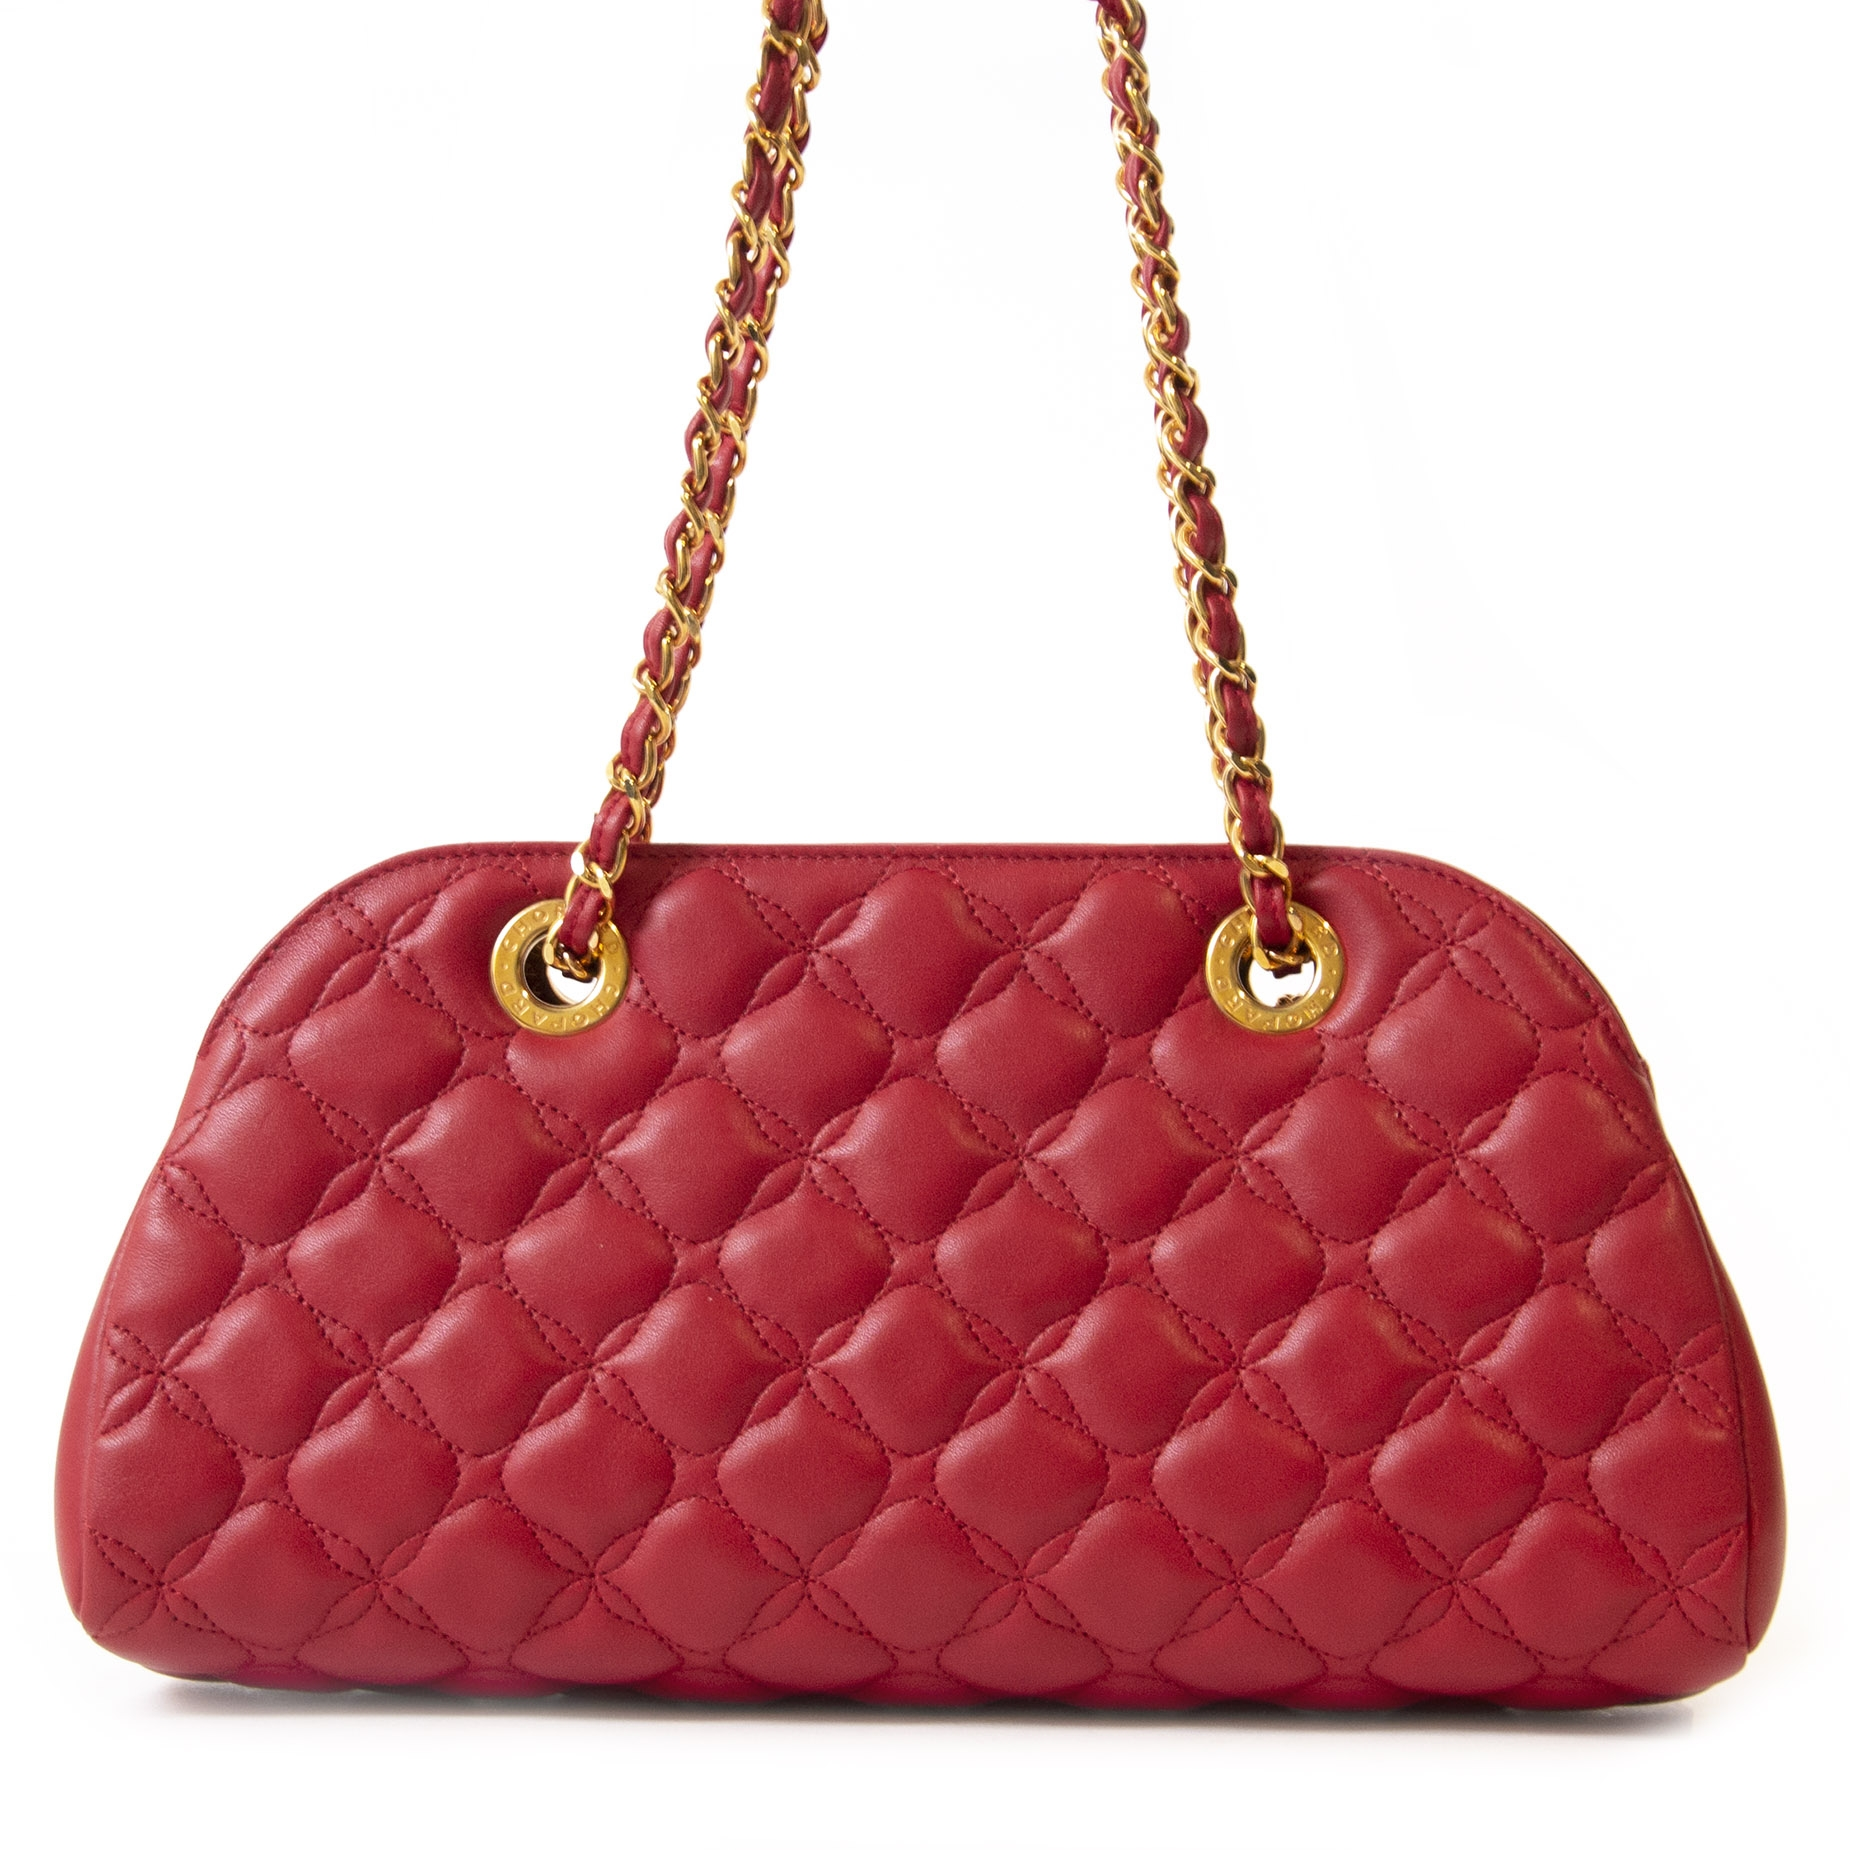 Authentieke tweedehands vintage Chopard Red Imperiale Bag koop online webshop LabelLOV